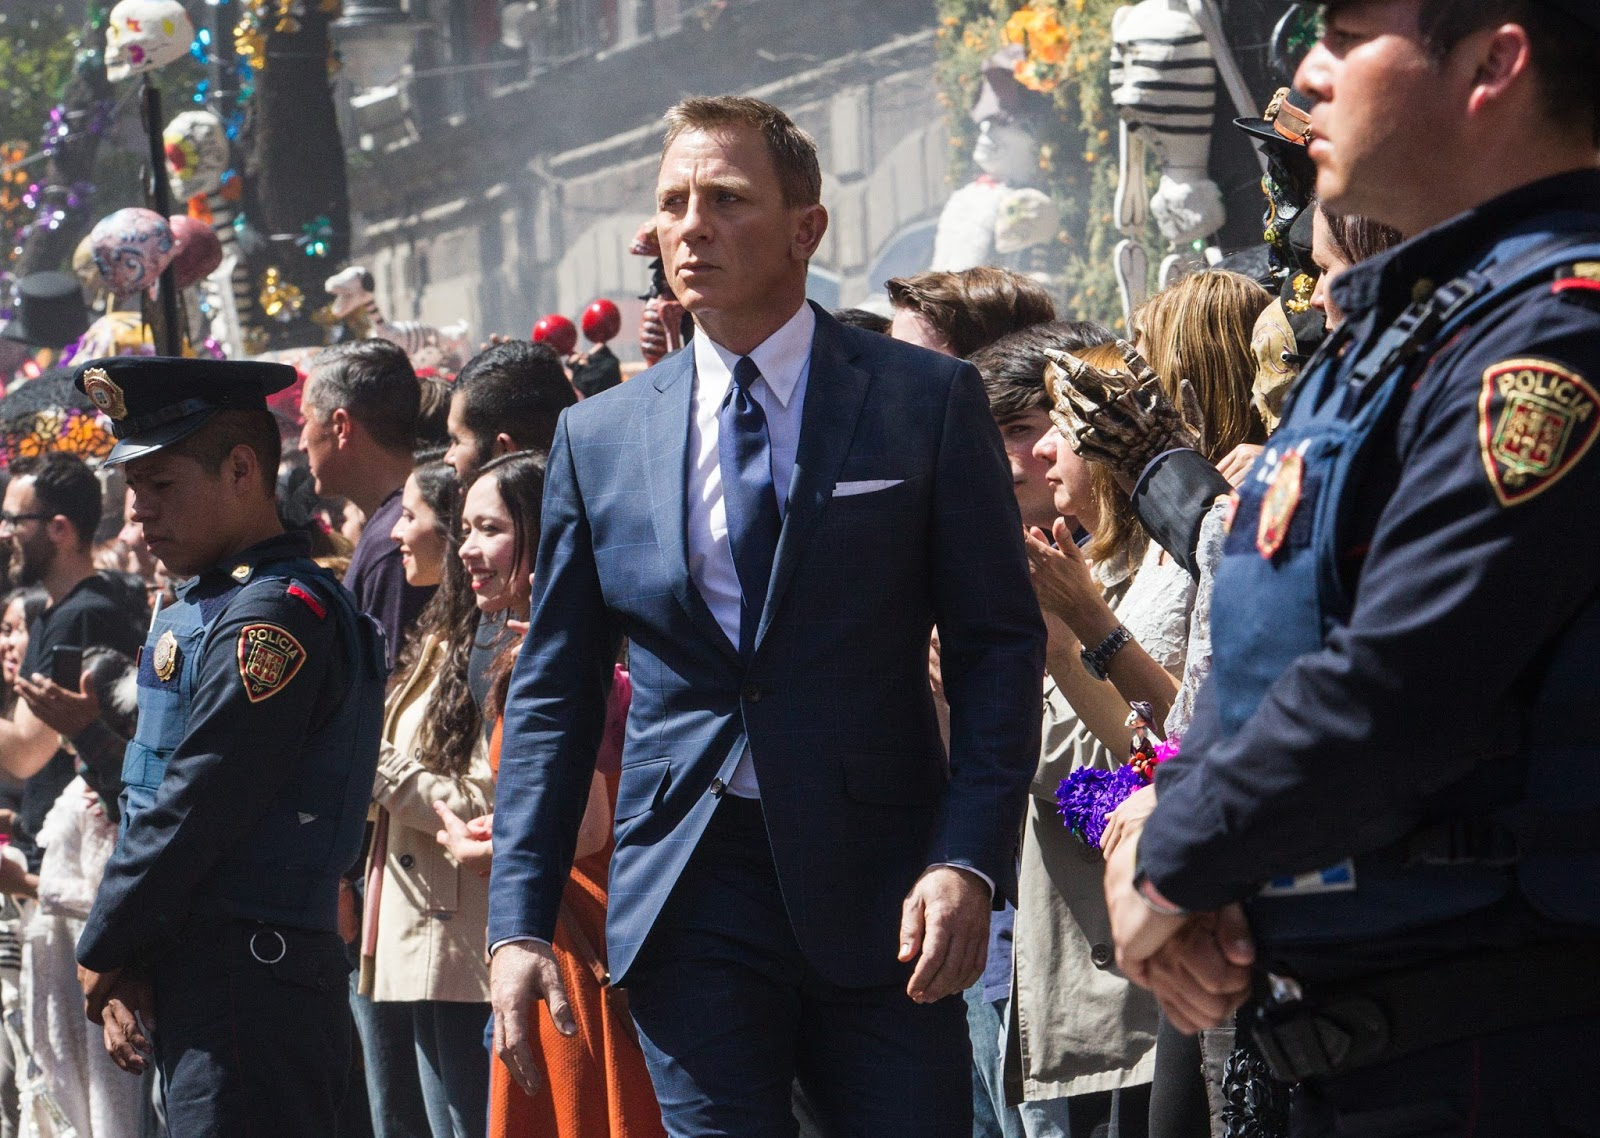 James Bond (Daniel Craig) in the midst of the Day of the Dead festival in Mexico City in Spectre (2015)